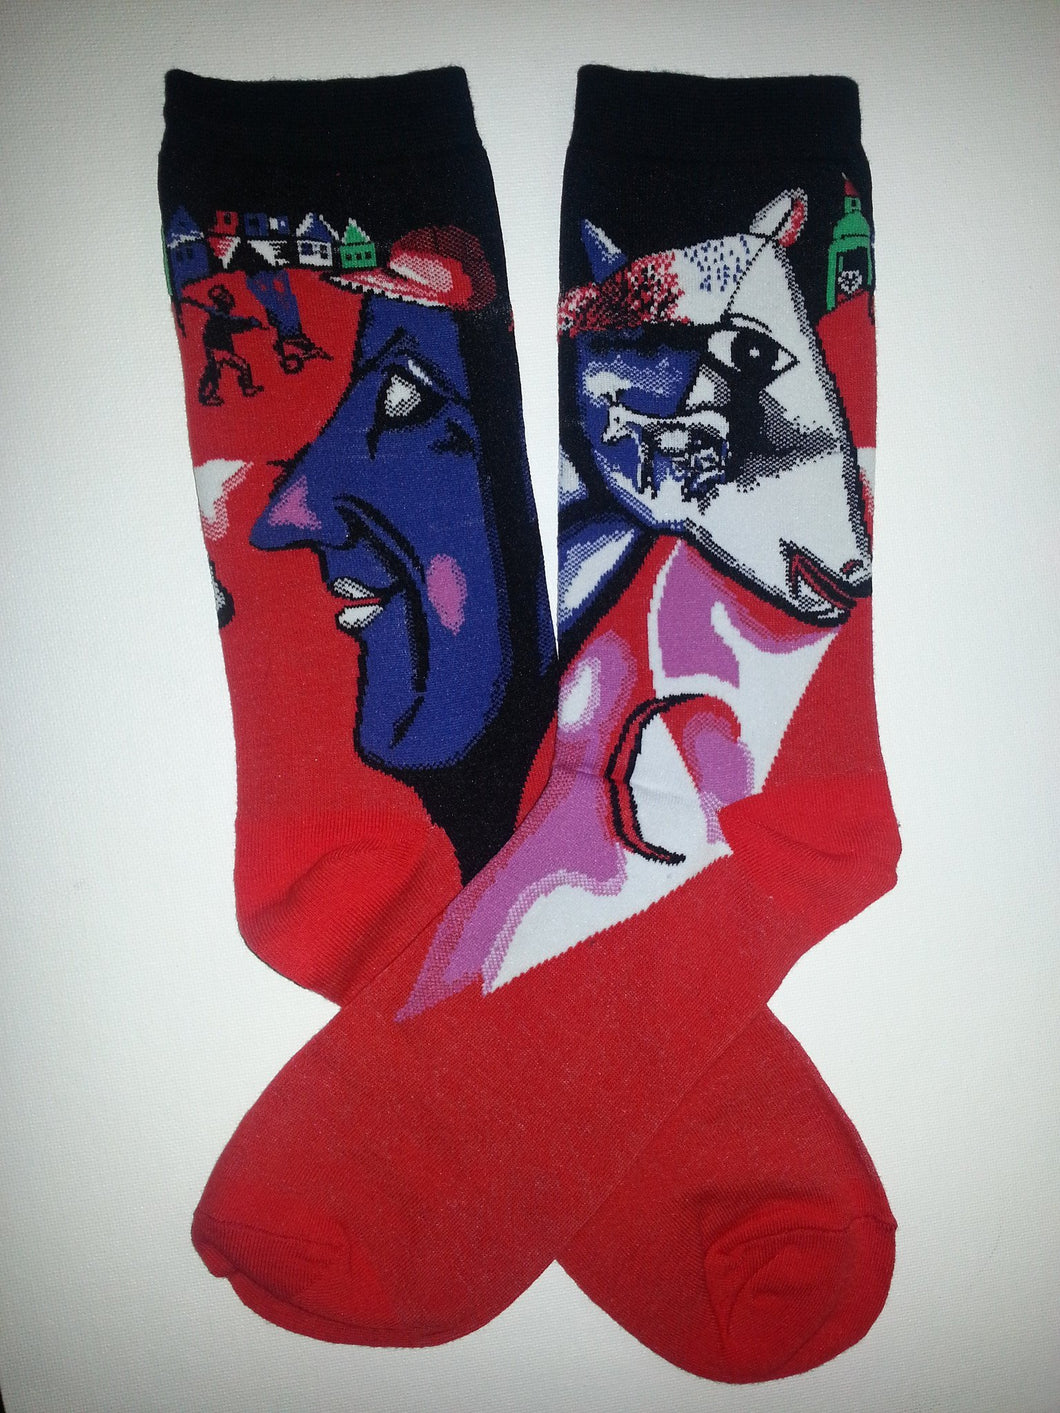 I And The Village by Marc Chagall Crew Socks